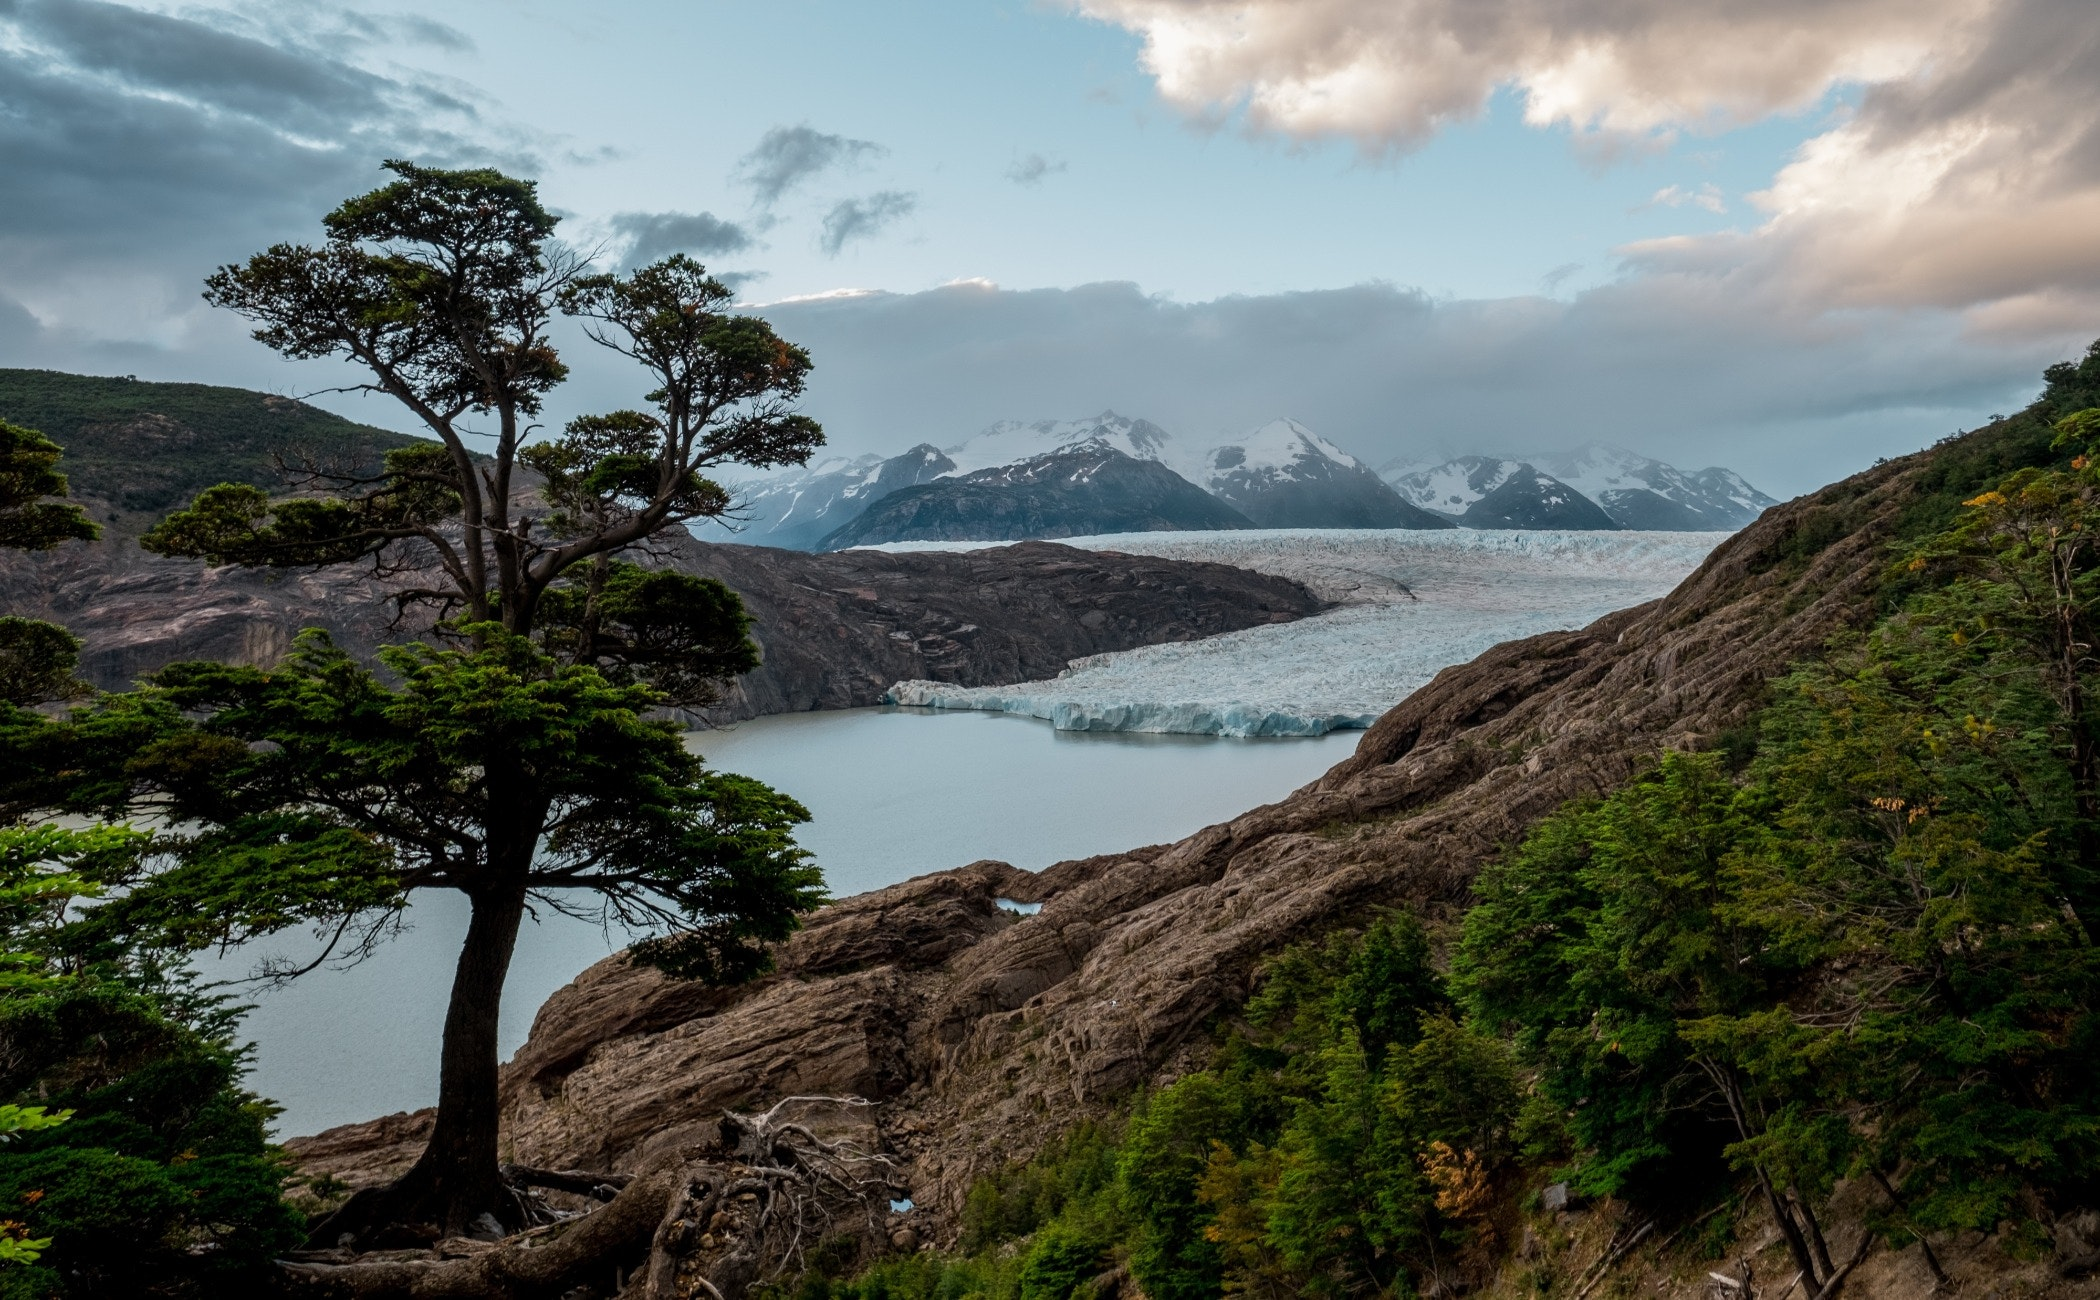 nature,tree,plant,outdoors,mountain,ice,promontory